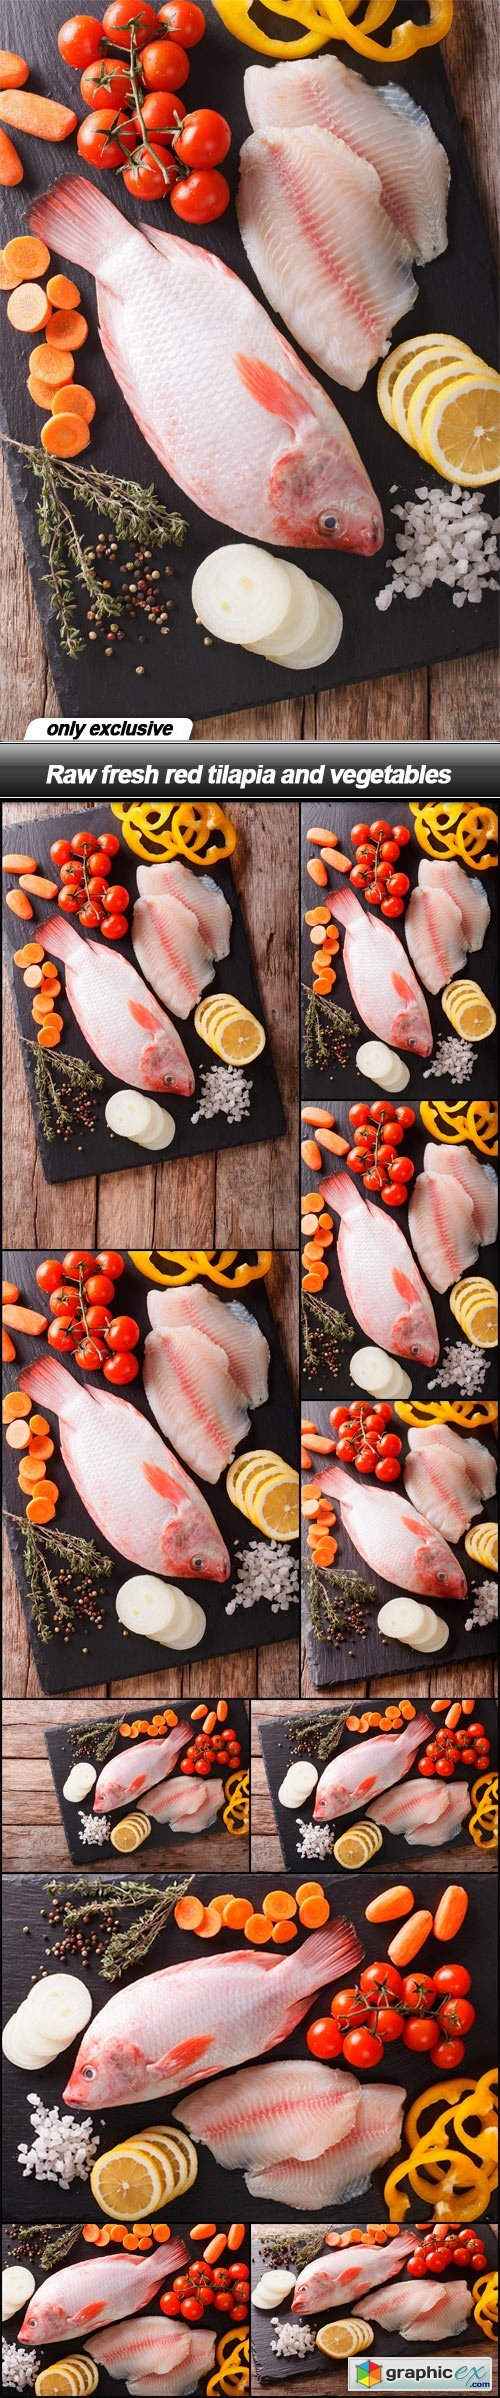 Raw fresh red tilapia and vegetables - 10 UHQ JPEG